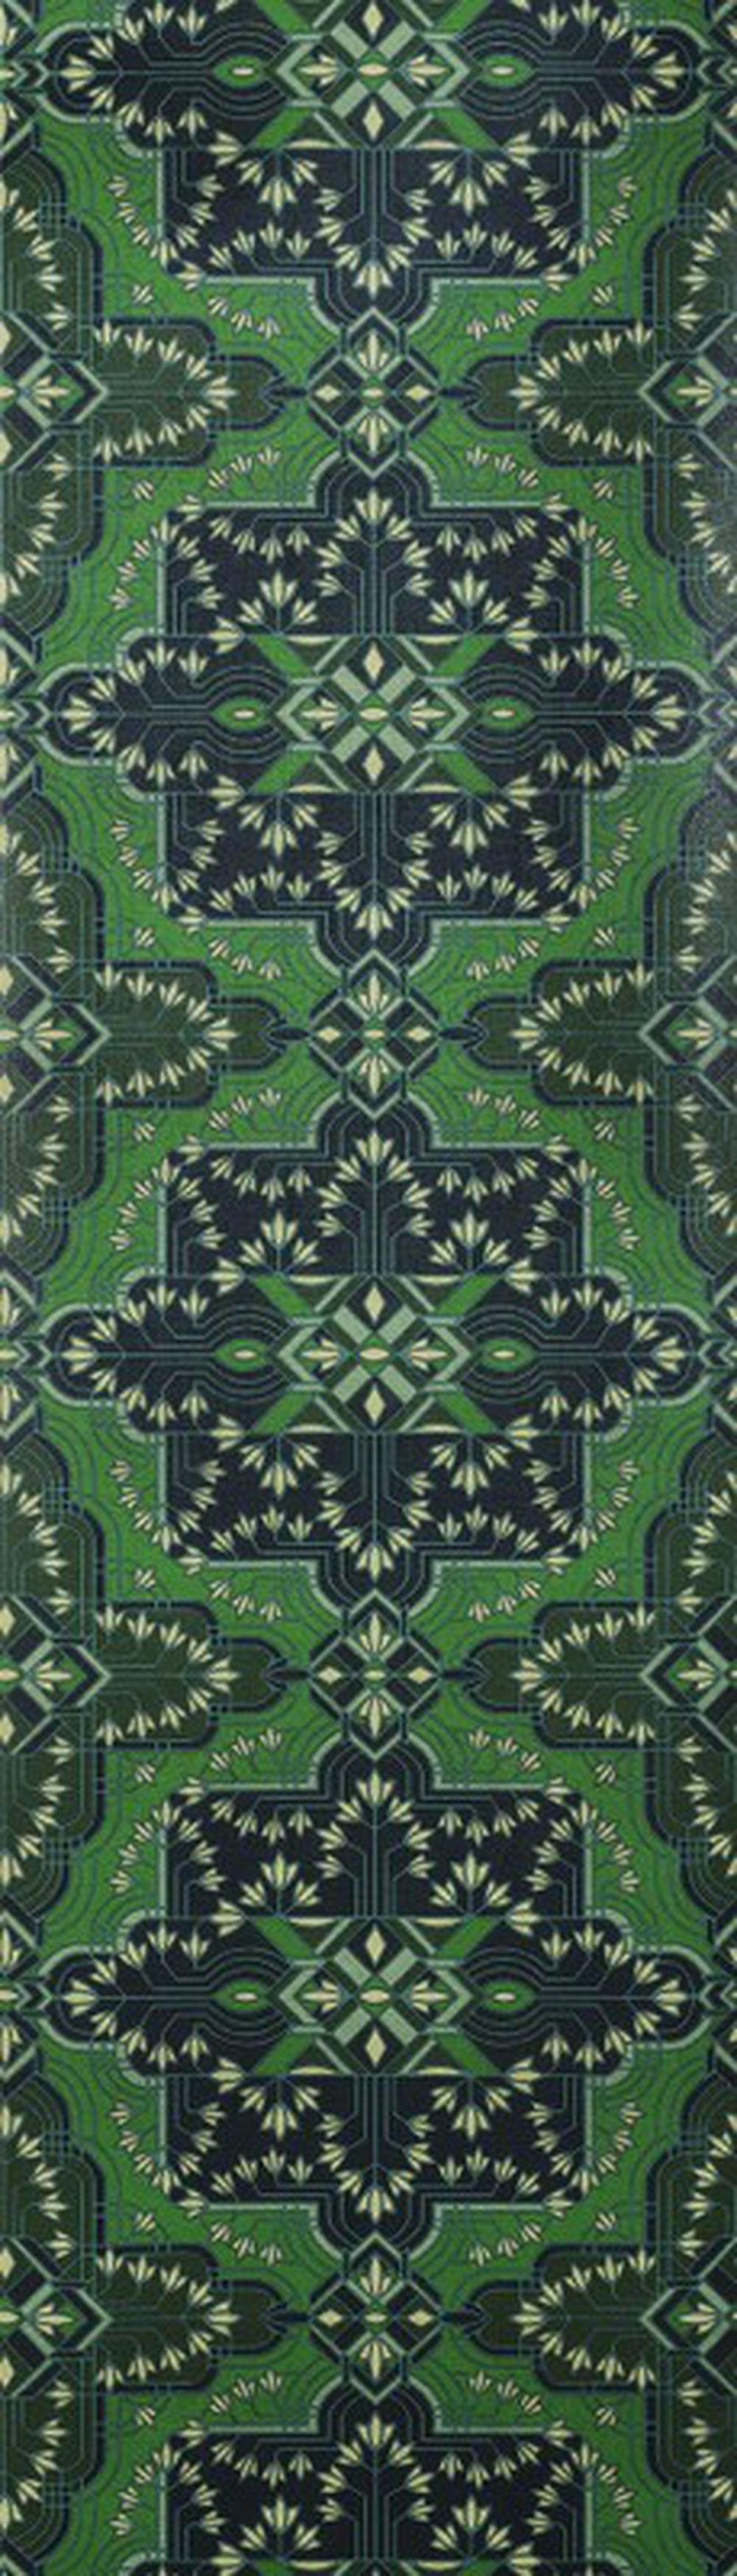 Photo of the fabric Majorelle Wallpaper Emerald swatch by Catherine Martin by Mokum. Use for Wall Covering. Style of Decorative, Geometric, Pattern, Print